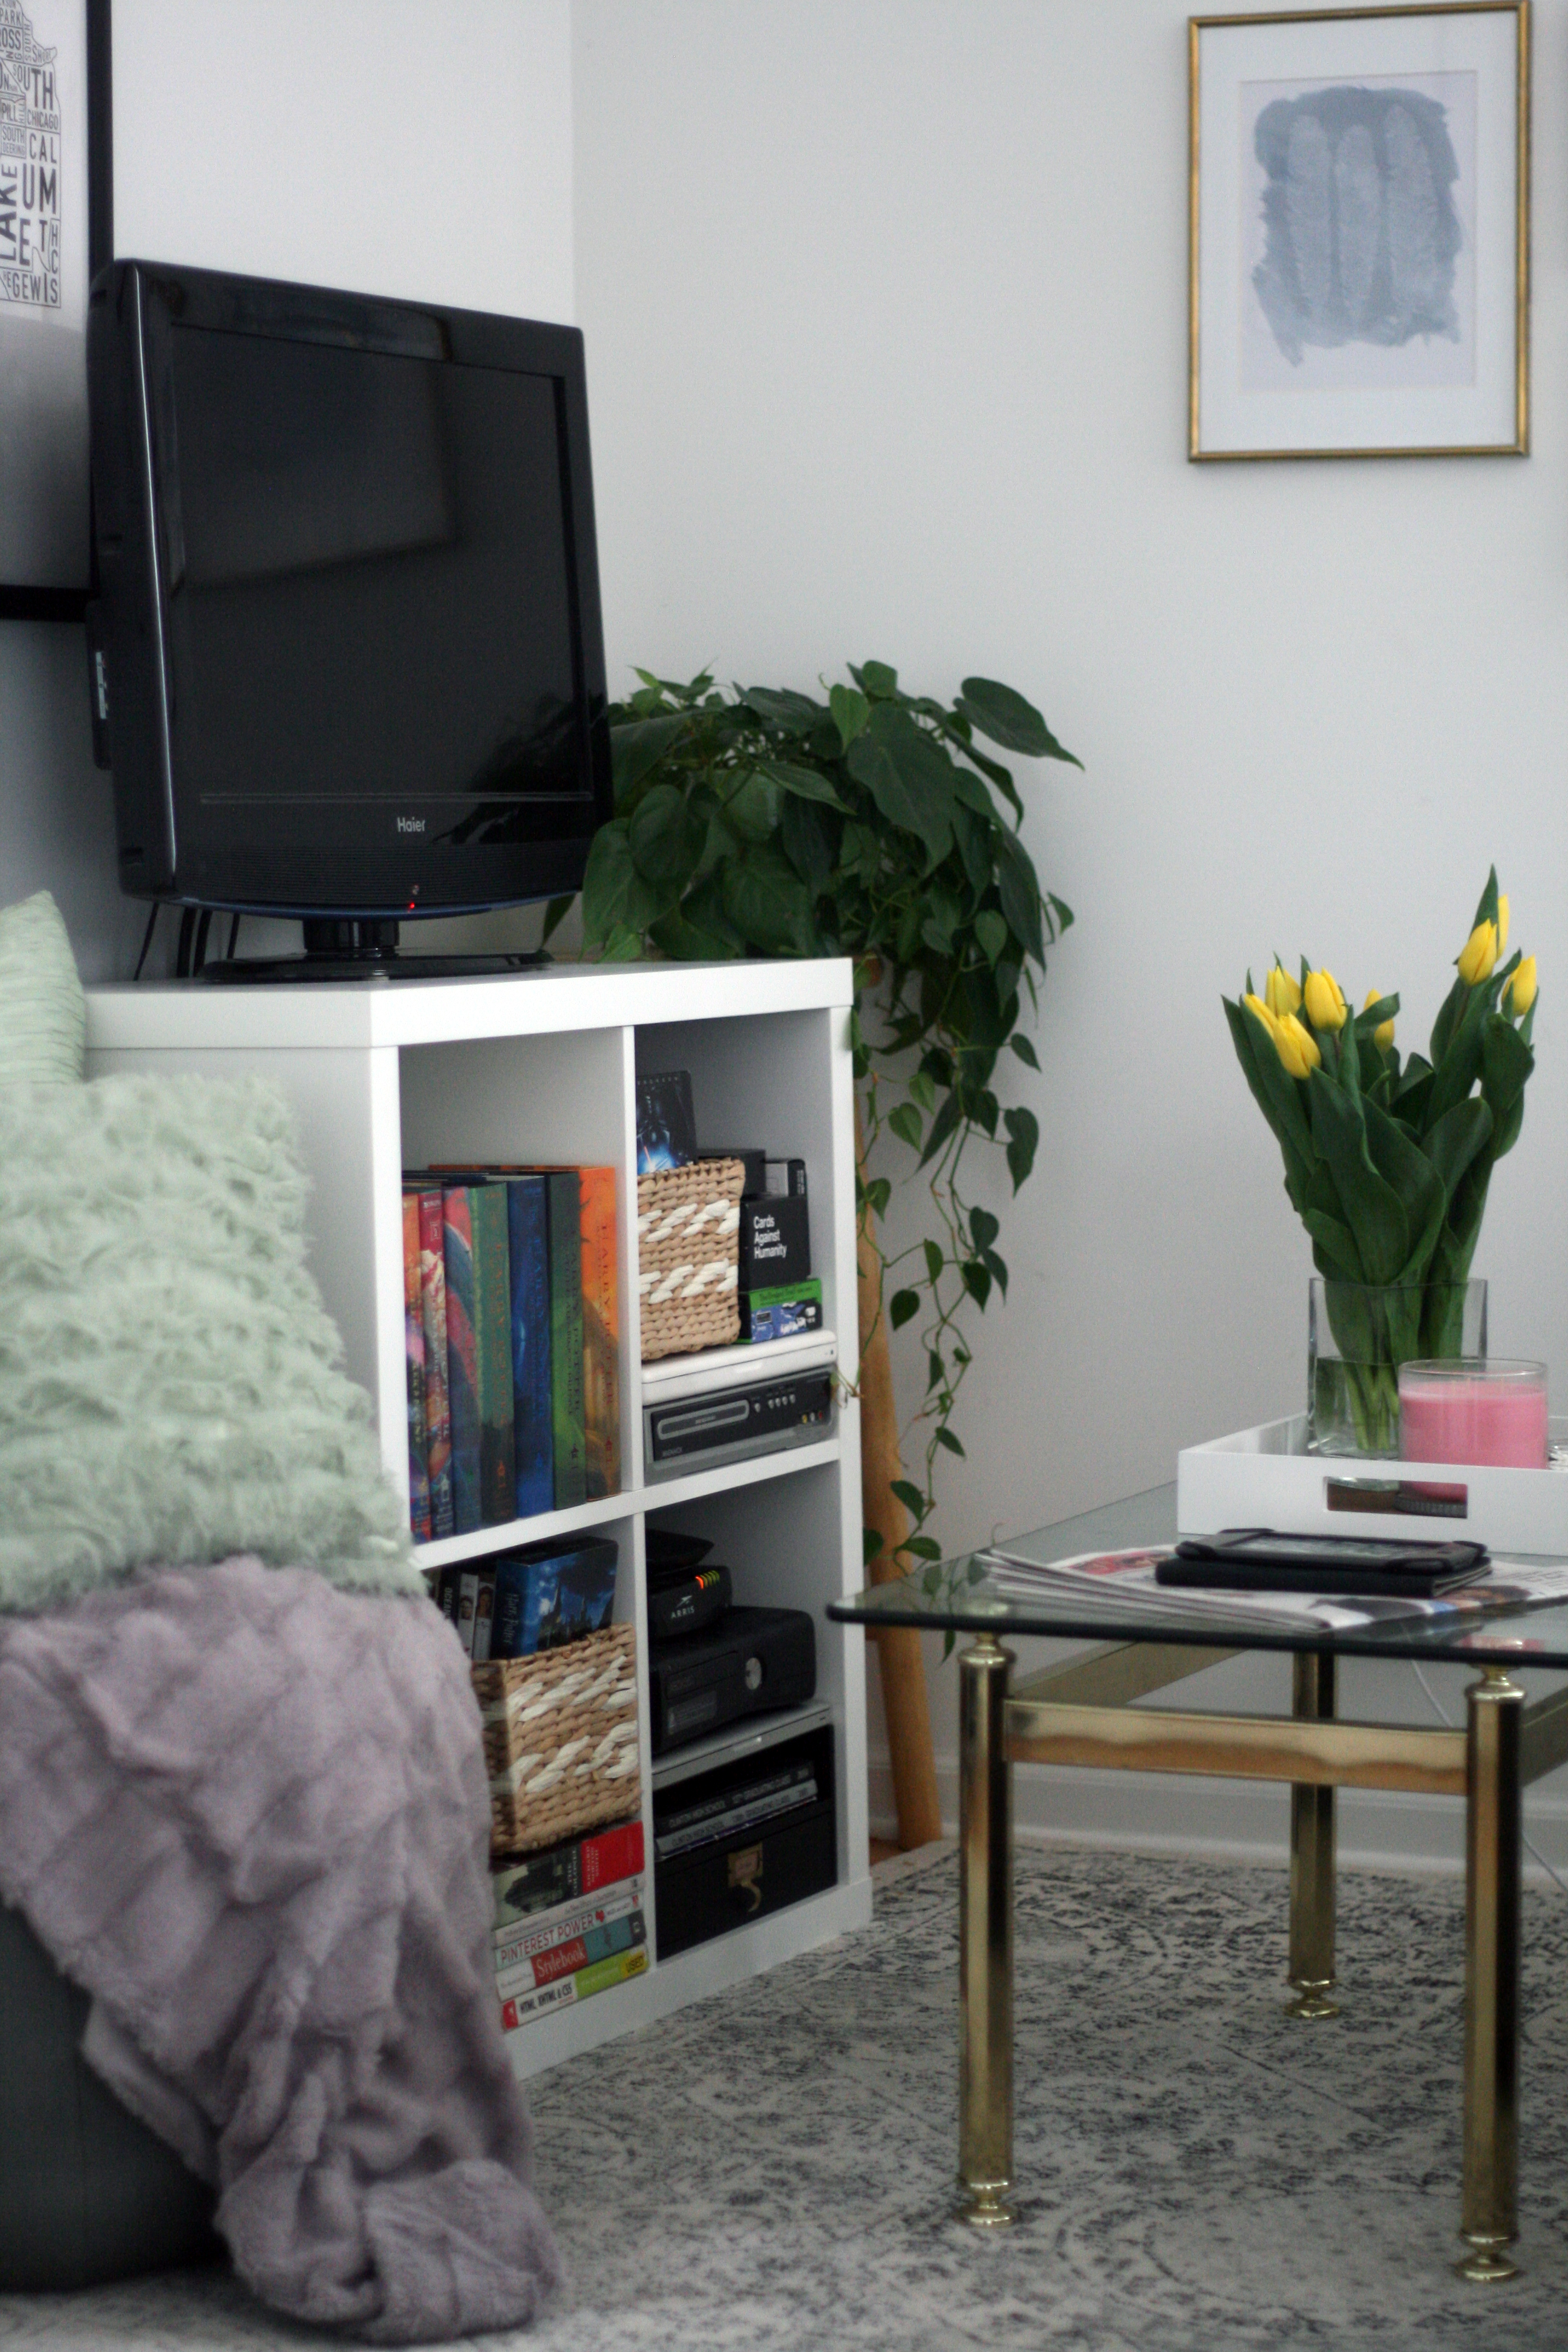 Interior Design Tips For Small Spaces A Sneak Peek Of My Chicago - Interior-design-tips-for-small-apartments